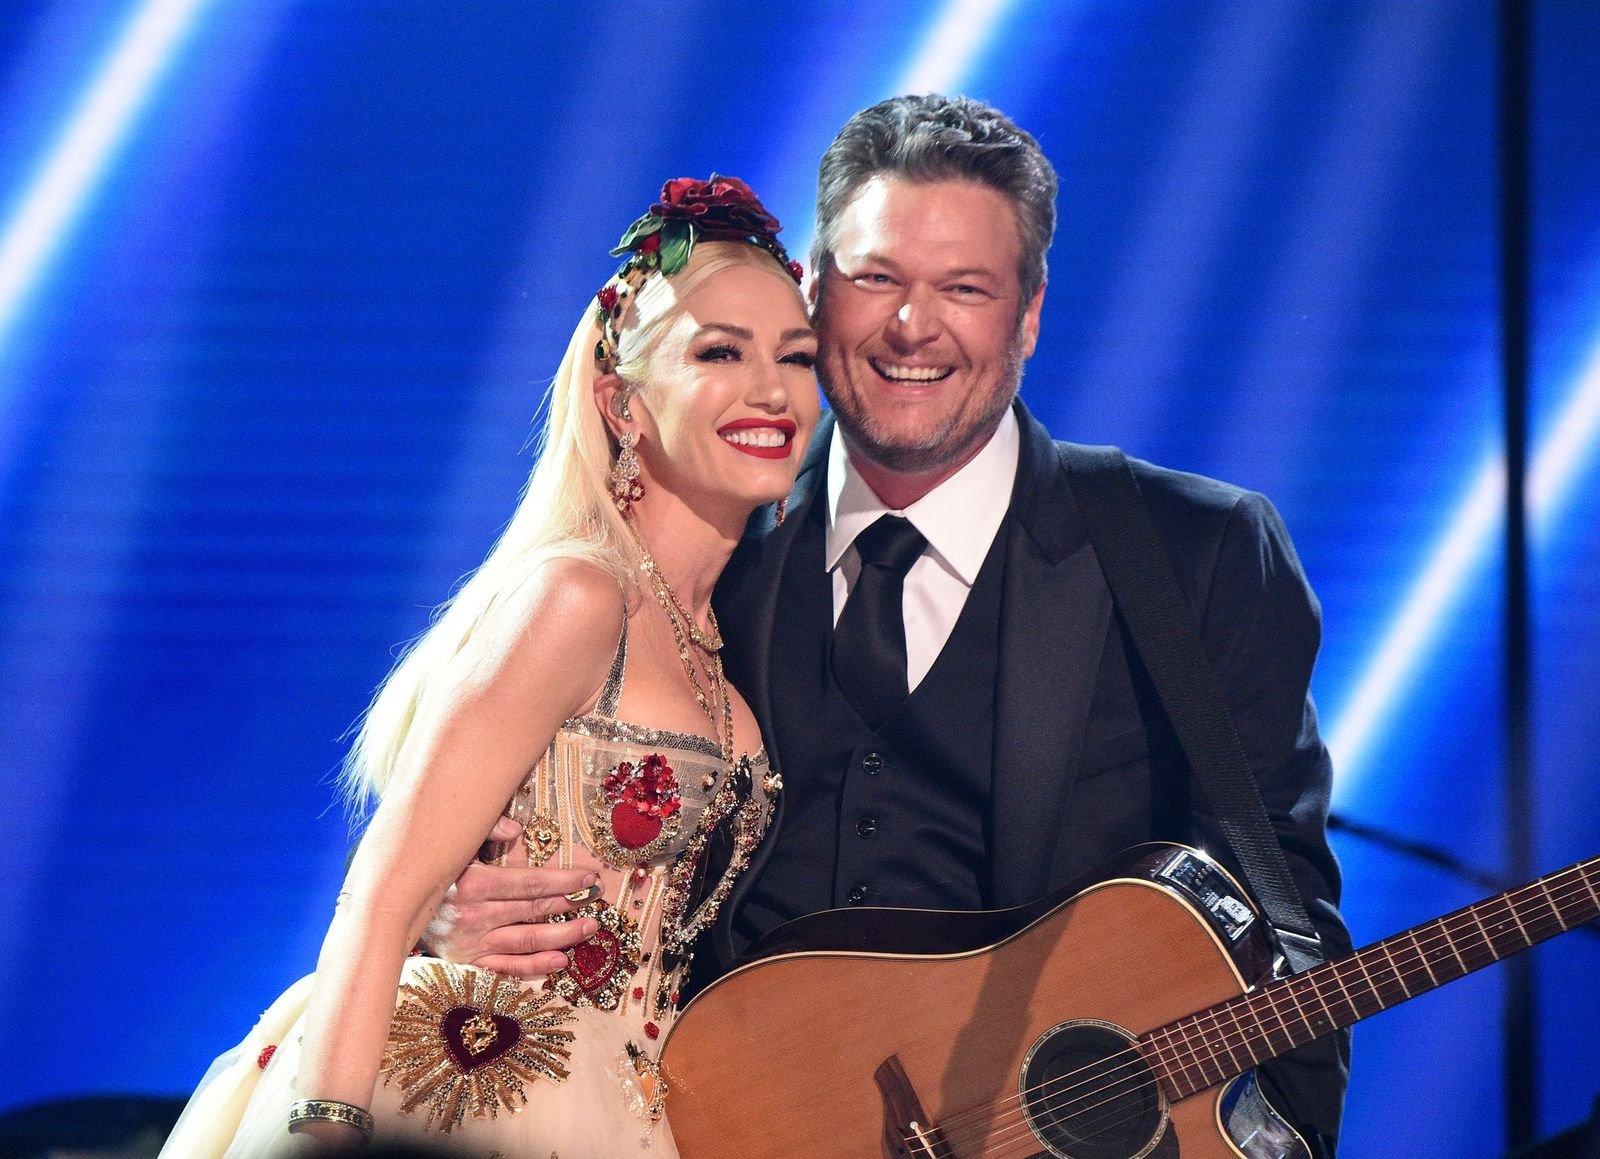 Gwen Stefani and Blake Shelton pose onstage during the 62nd Annual GrammyAwardson January 26, 2020, in Los Angeles, California | Photo:Kevin Mazur/Getty Images